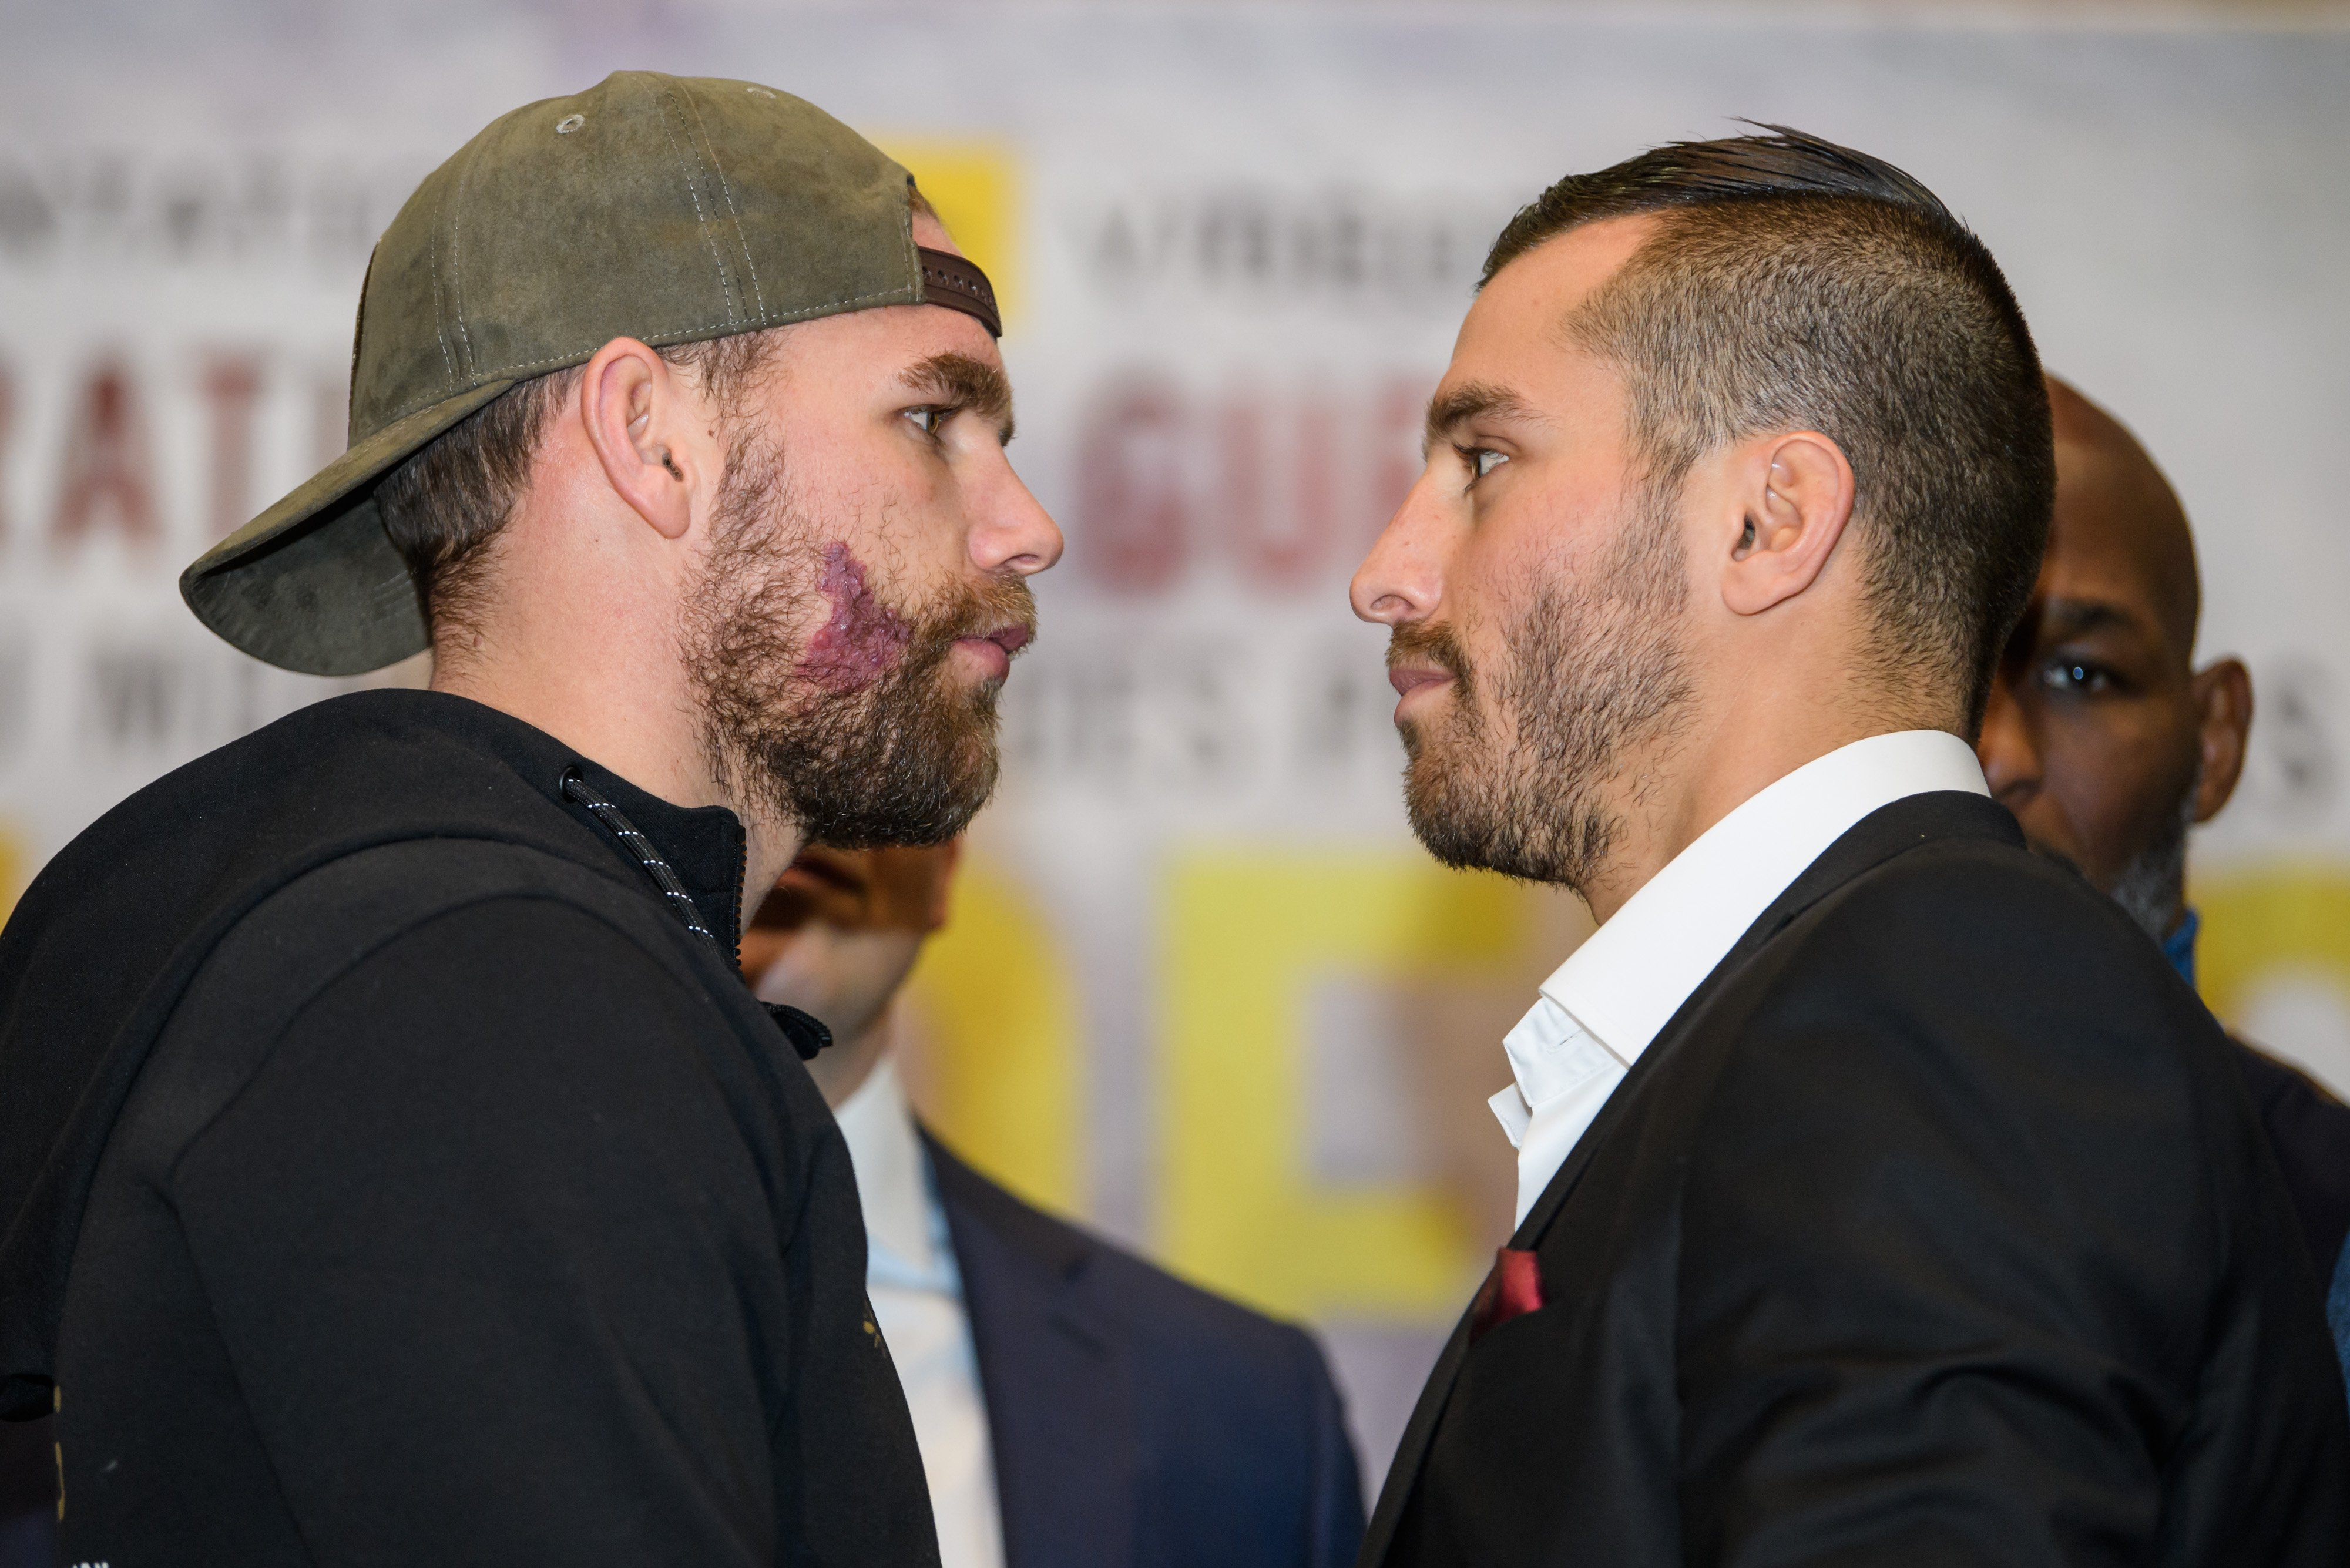 Billy Joe Saunders vows to put David Lemieux 'out like a candle'